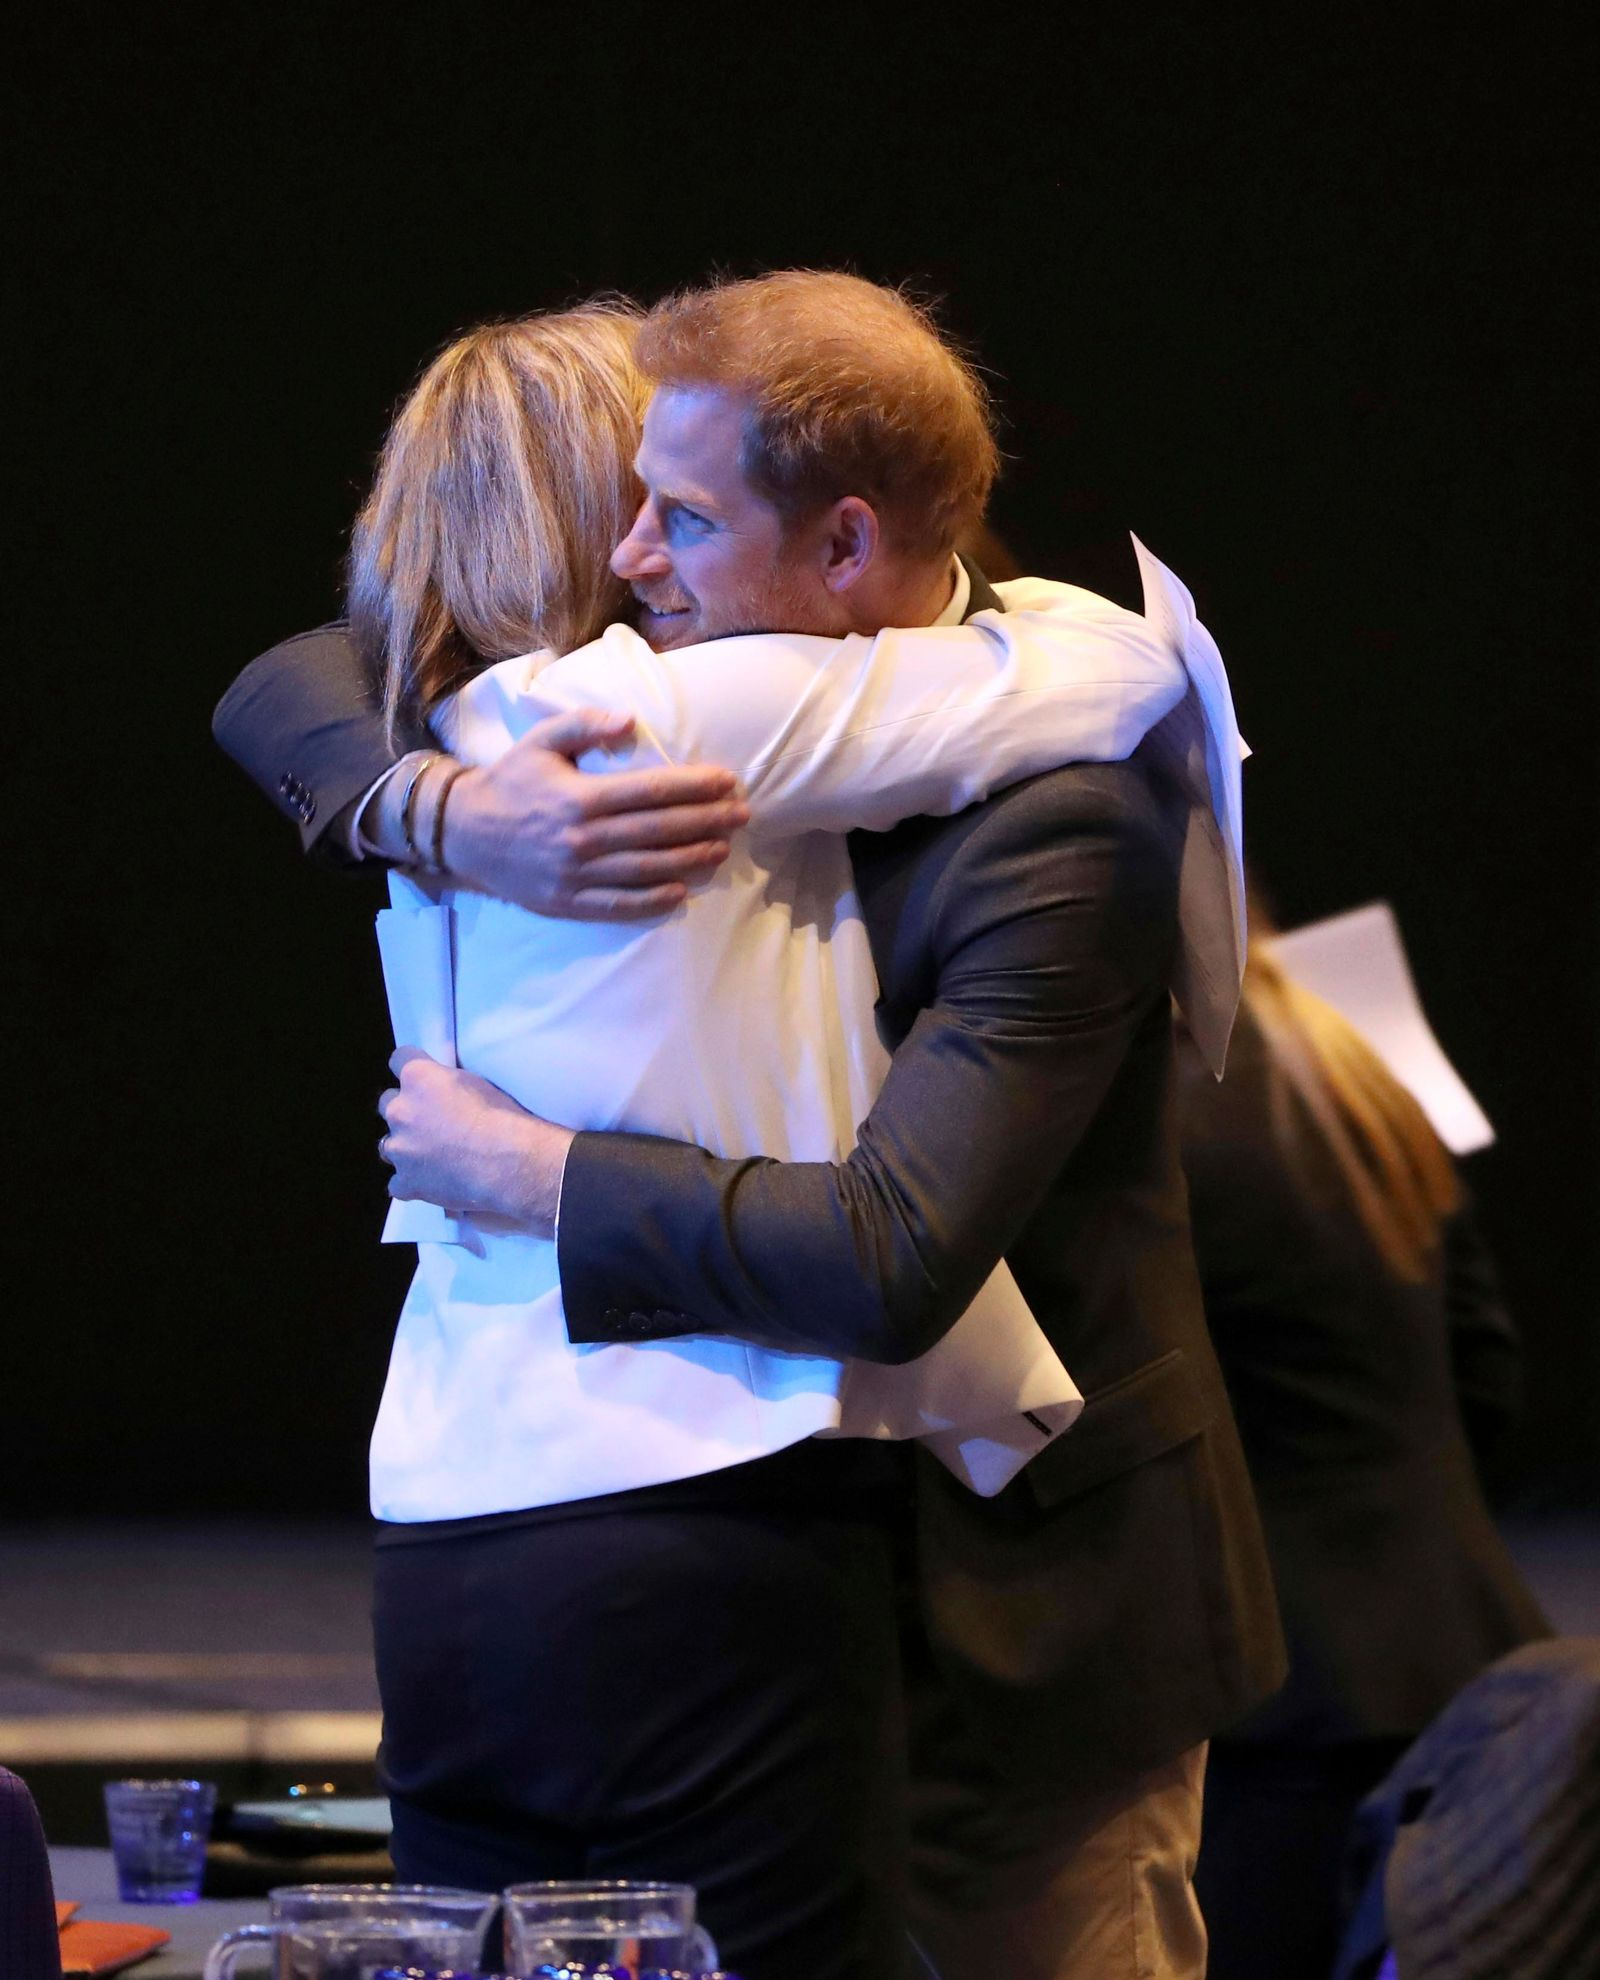 Britain's Prince Harry is hugged, during a sustainable tourism summit at the Edinburgh International Conference Centre in Edinburgh, Scotland, Wednesday, Feb. 26, 2020. (Andrew Milligan/Pool Photo via AP)